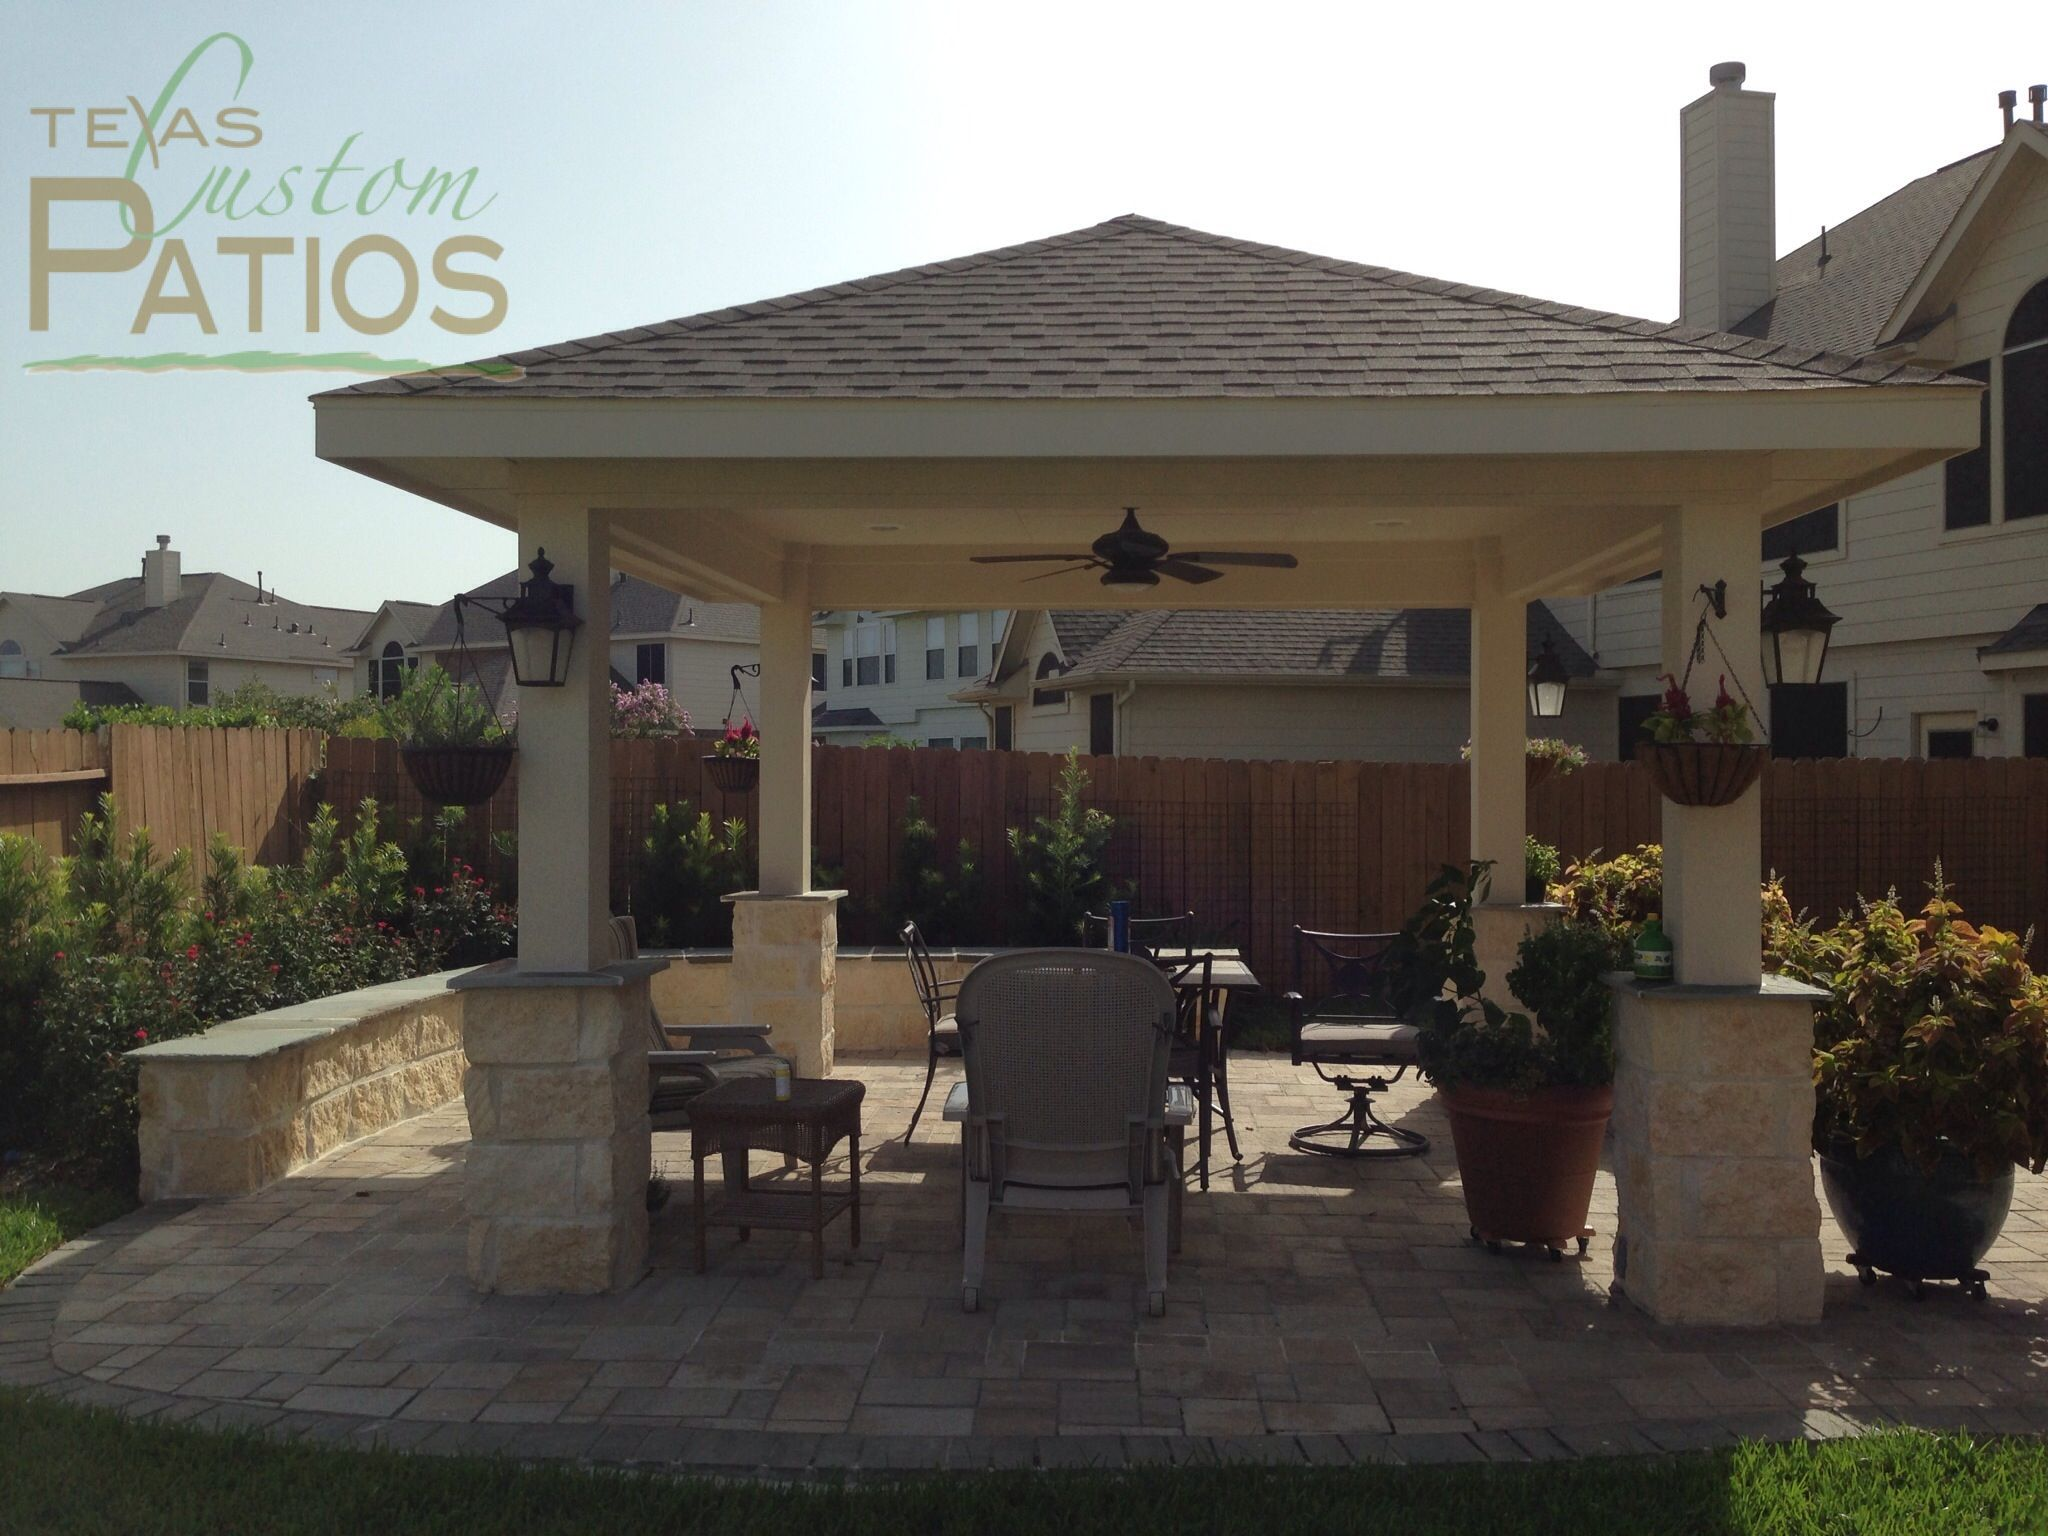 Freestanding patio cover pearland texas live free for Freestanding patio cover